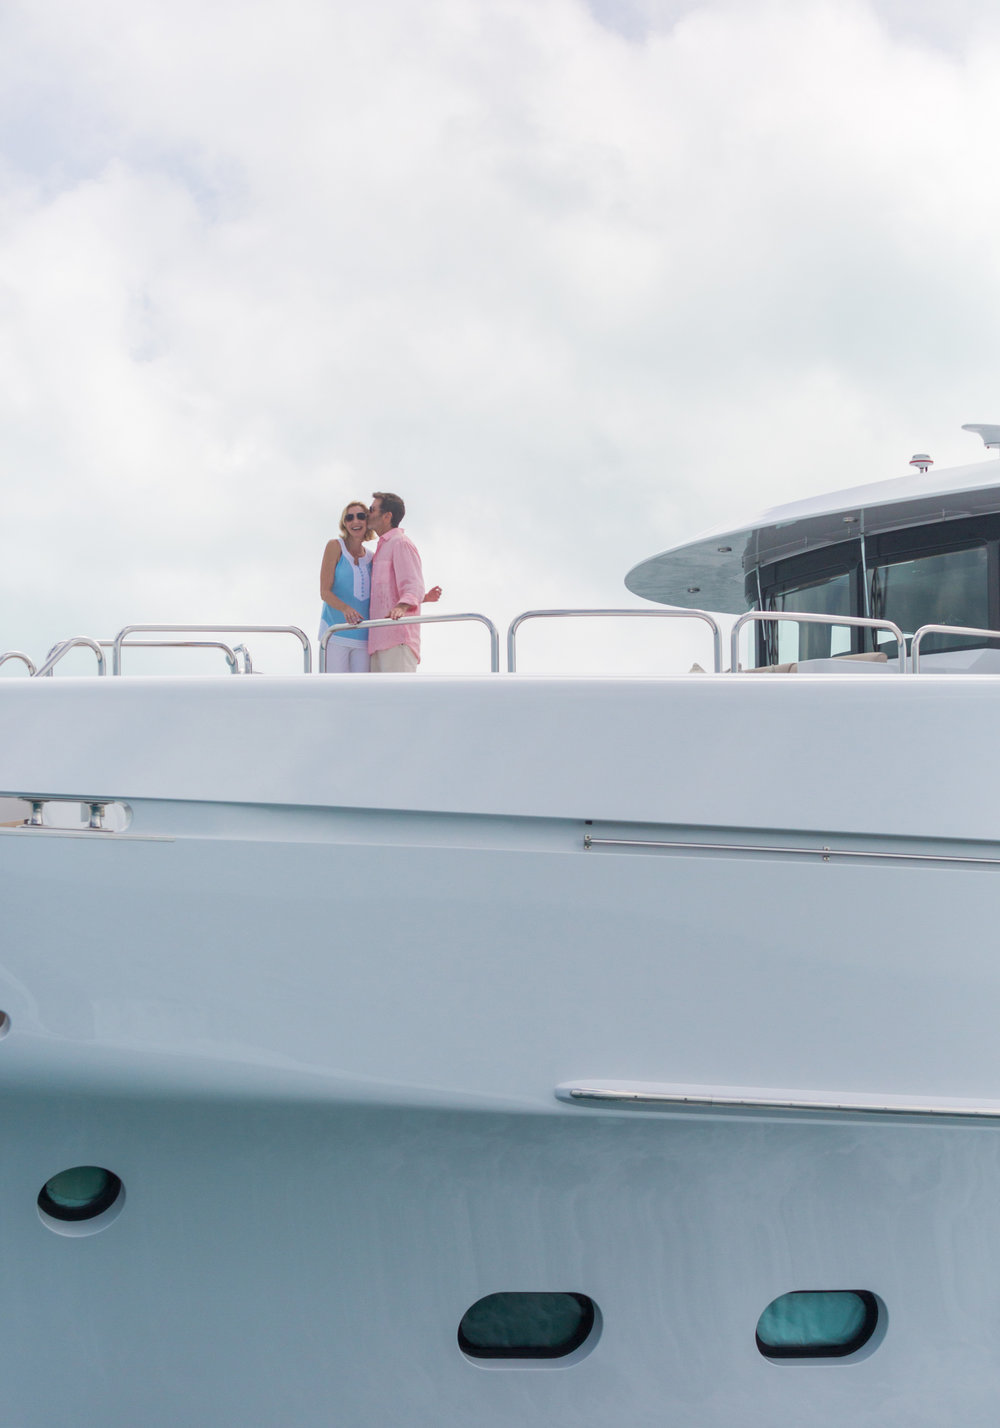 Live the romance of a luxury yachting vacation